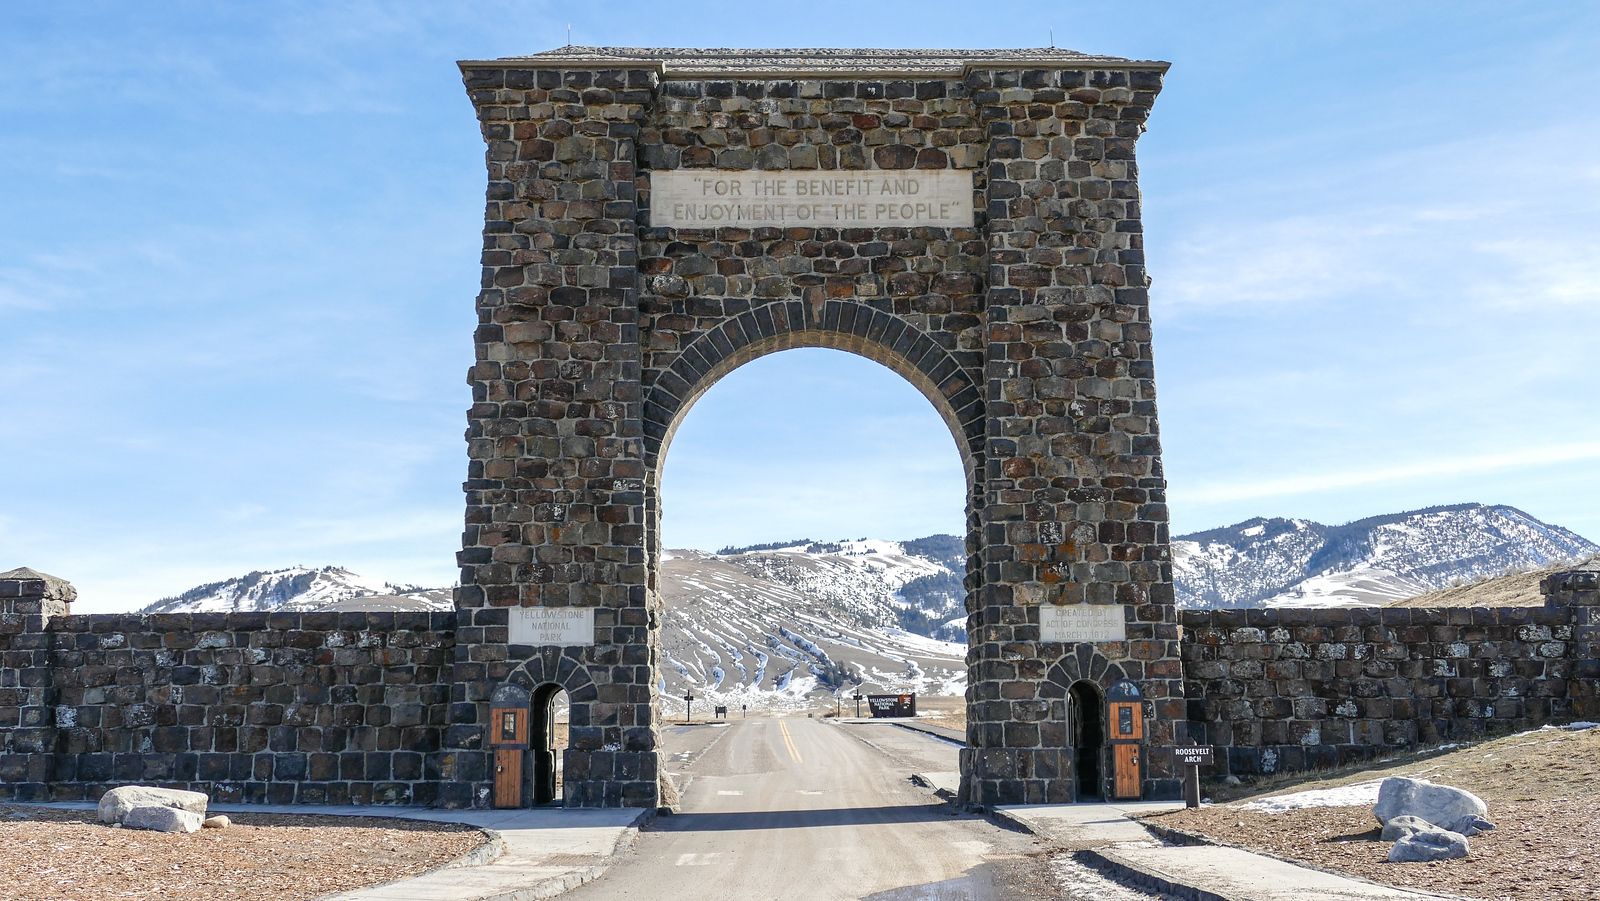 a stone arch over a driving path leading to snow covered mountains